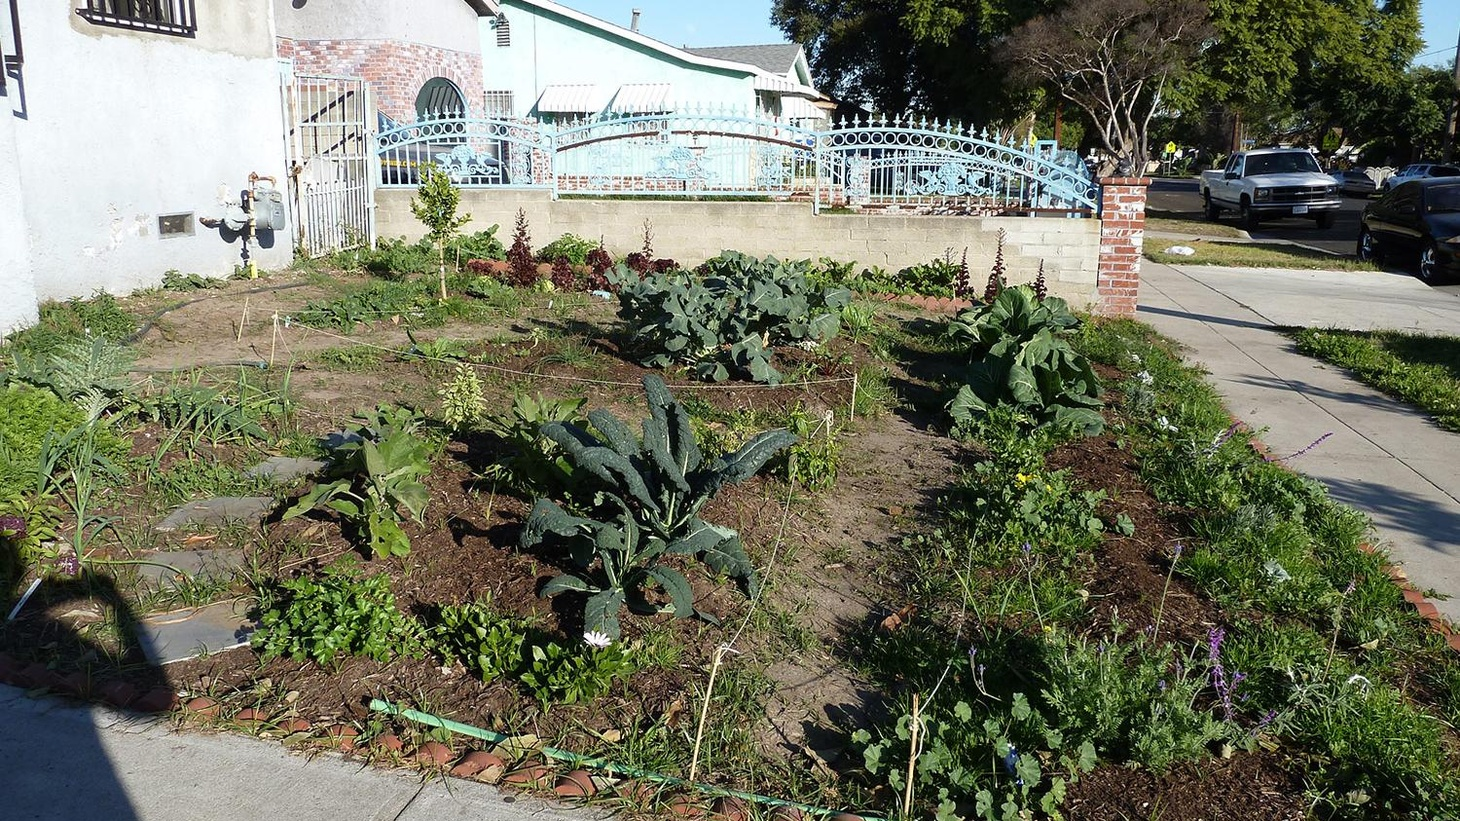 In South LA, Rob Finley planted a garden for himself. It grew on the city-owned strip of land, and Finley was ordered to desist.  Lopez found that nothing has changed.